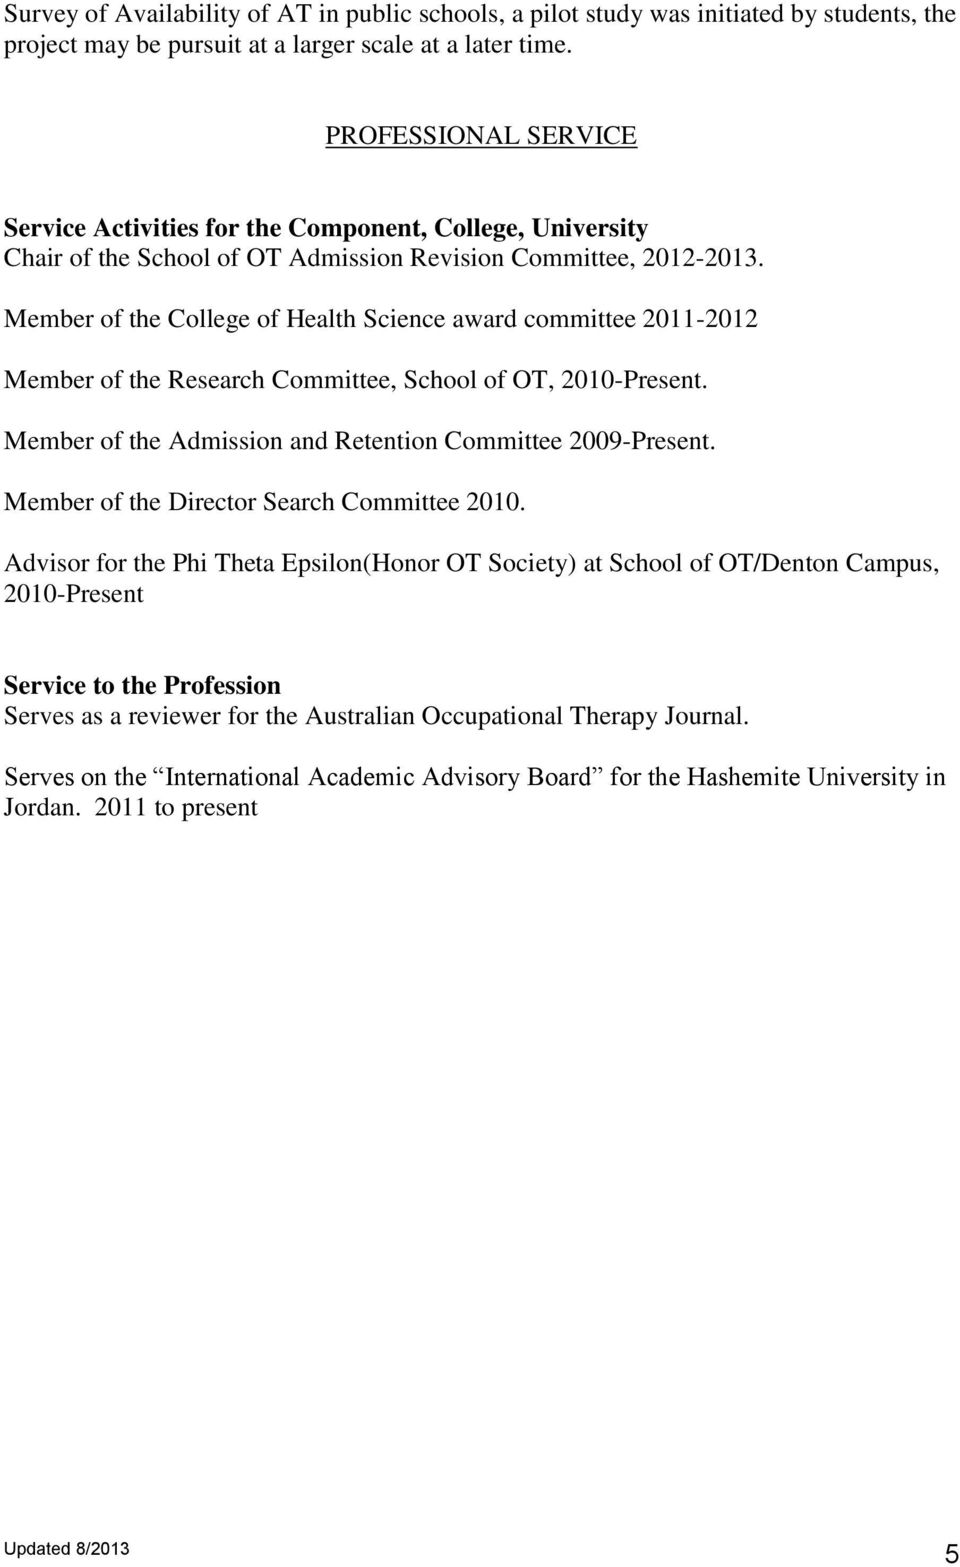 Member of the College of Health Science award committee 2011-2012 Member of the Research Committee, School of OT, 2010-Present. Member of the Admission and Retention Committee 2009-Present.